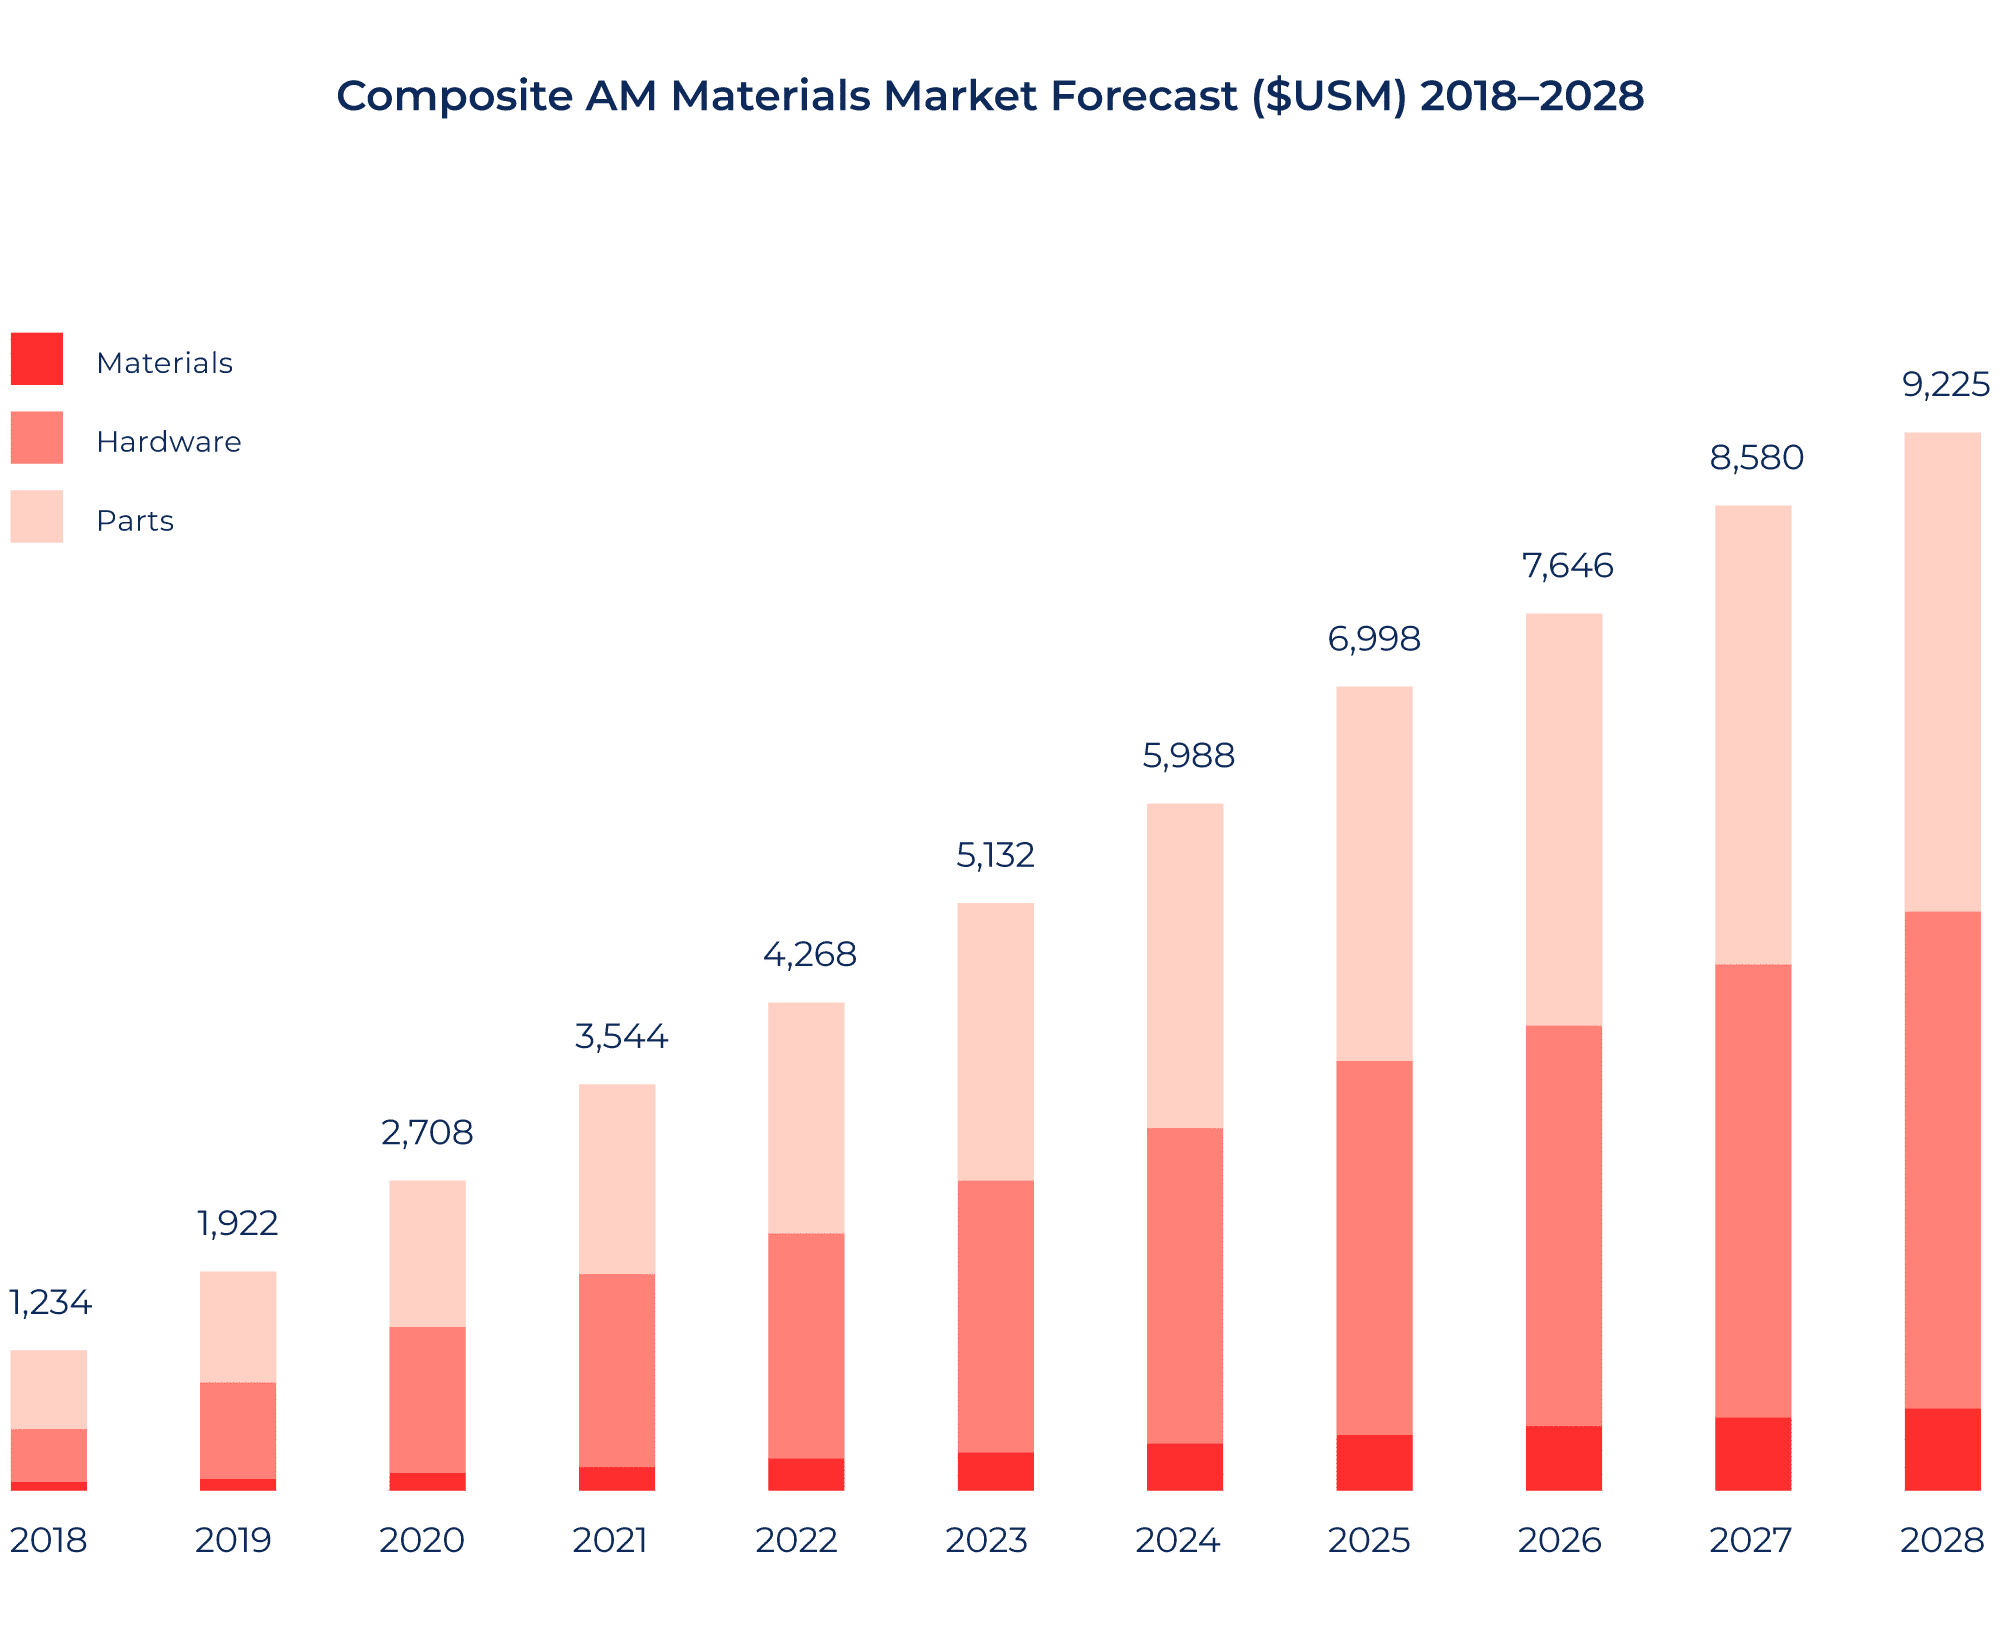 Composites AM market forecast 2018 to 2028